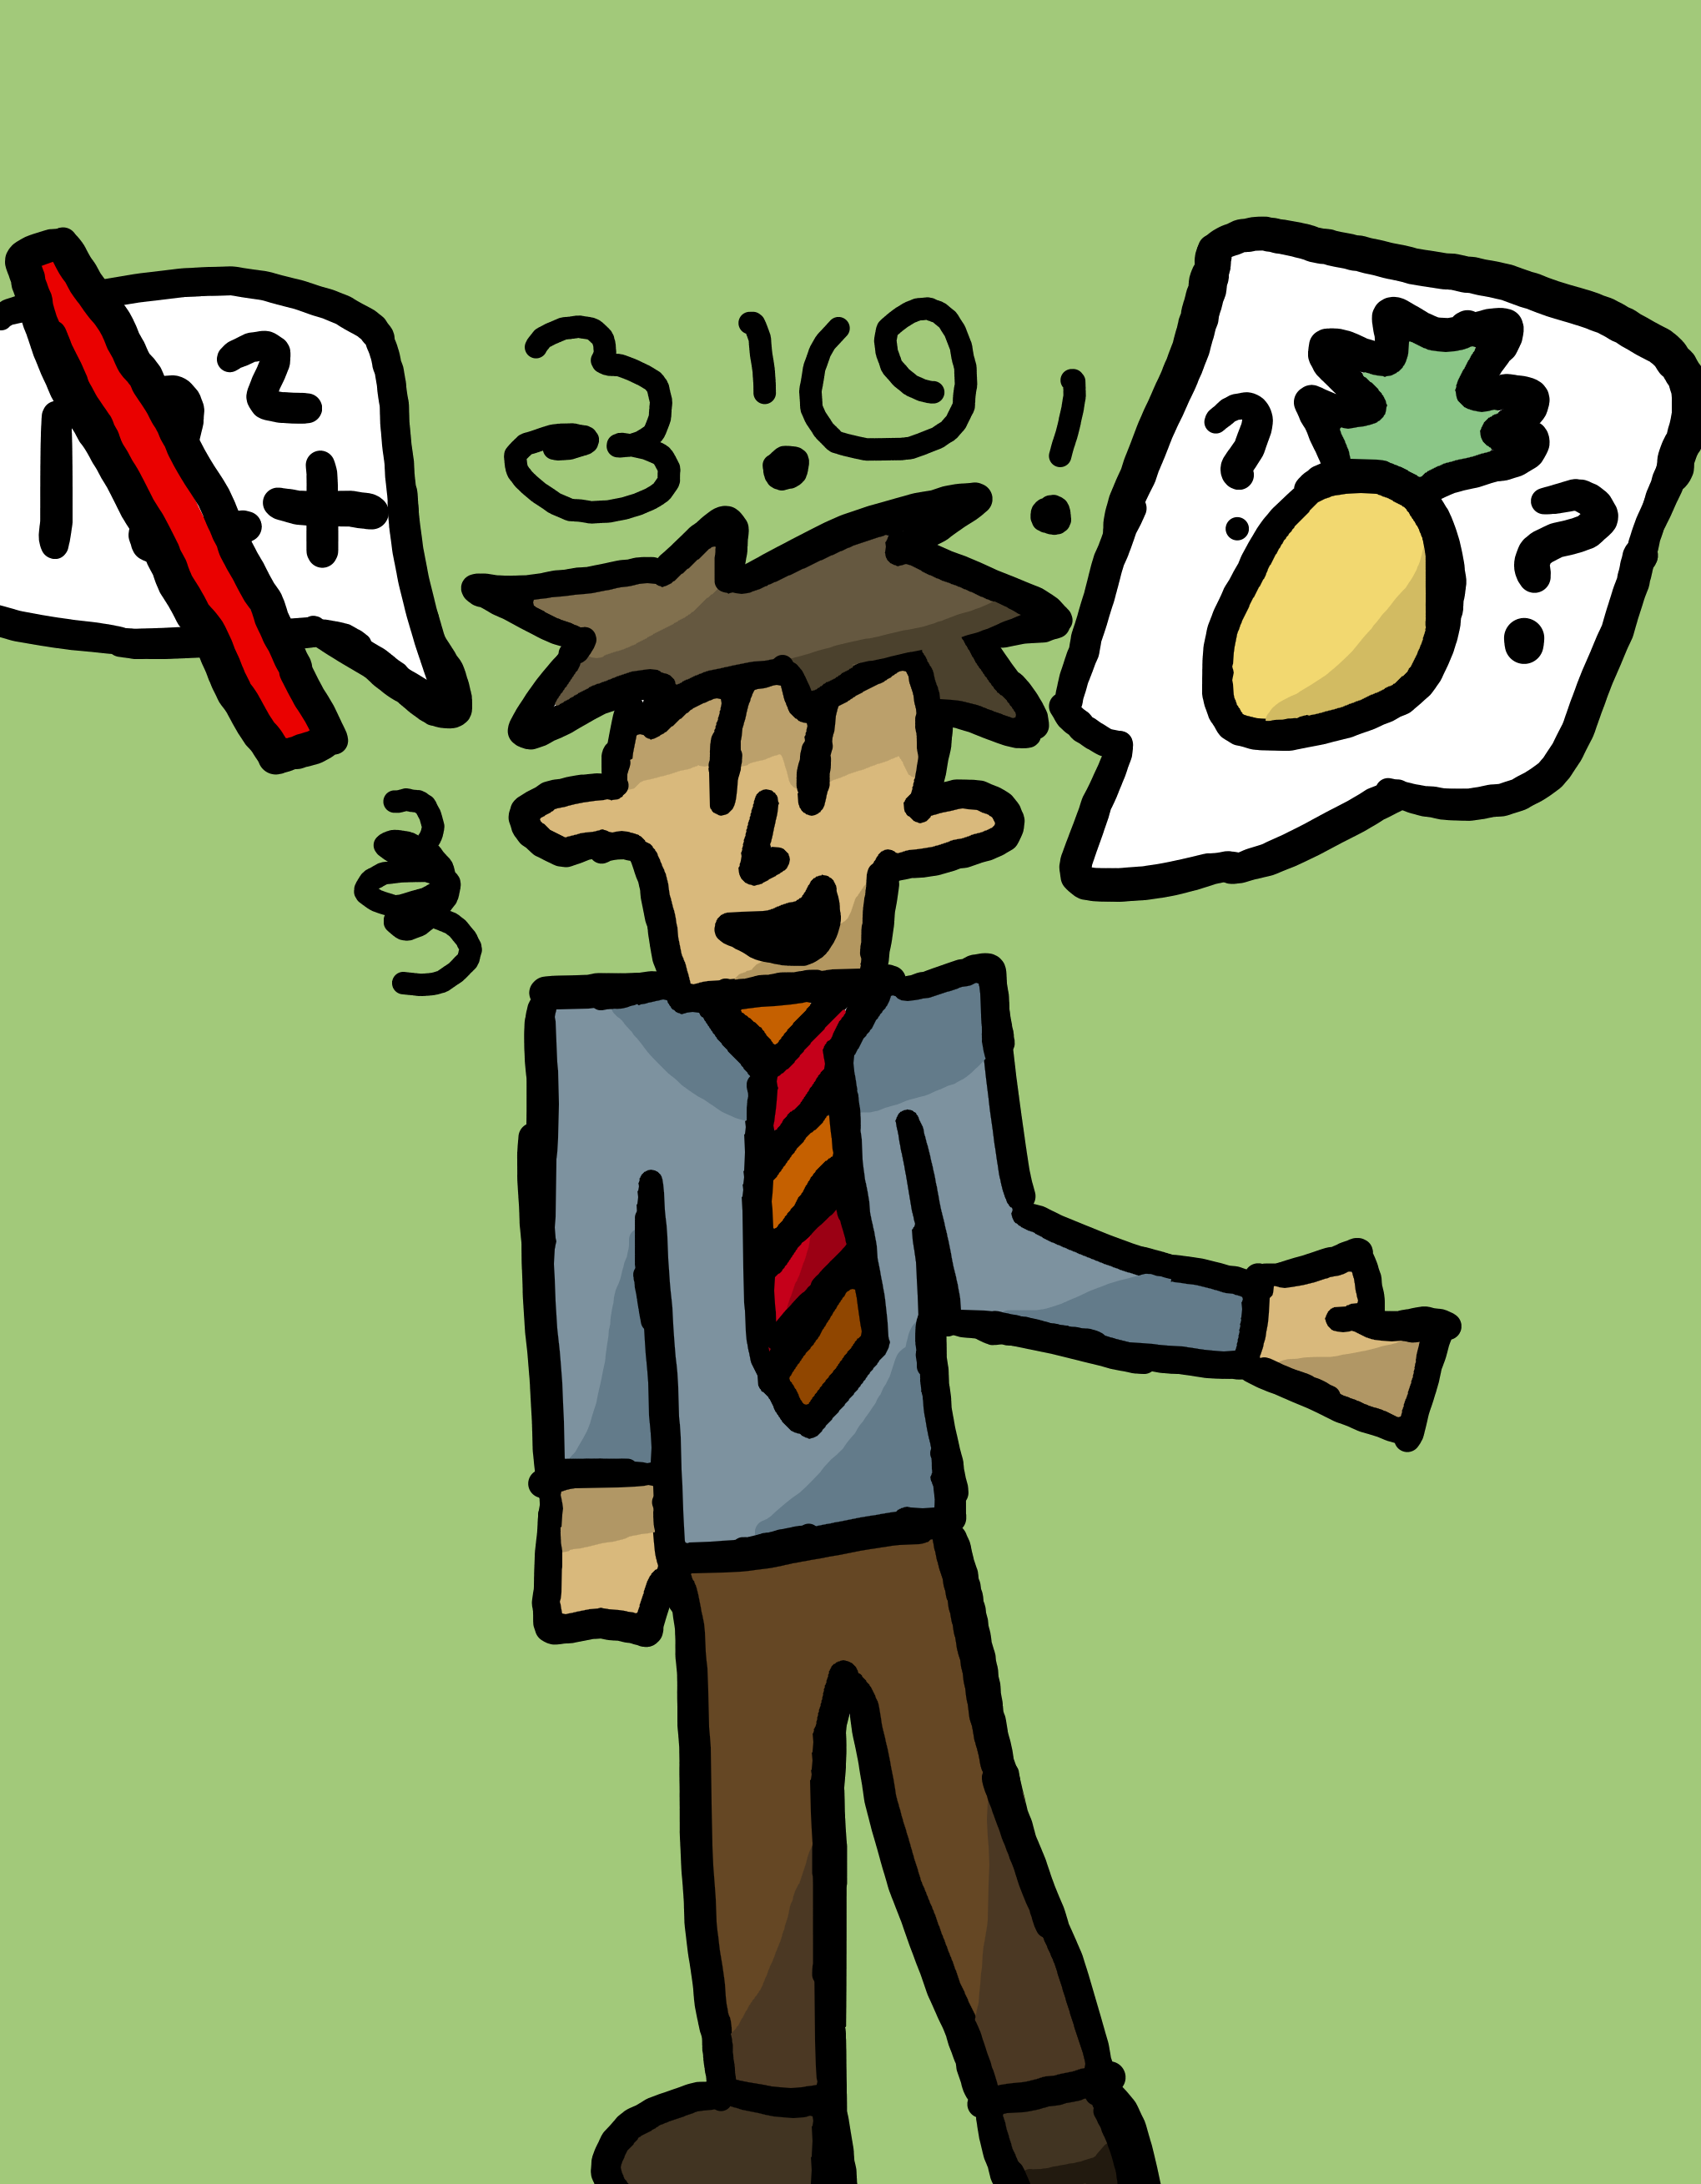 A drawing of a tecaher going off subject, from maths to talking about fruit.